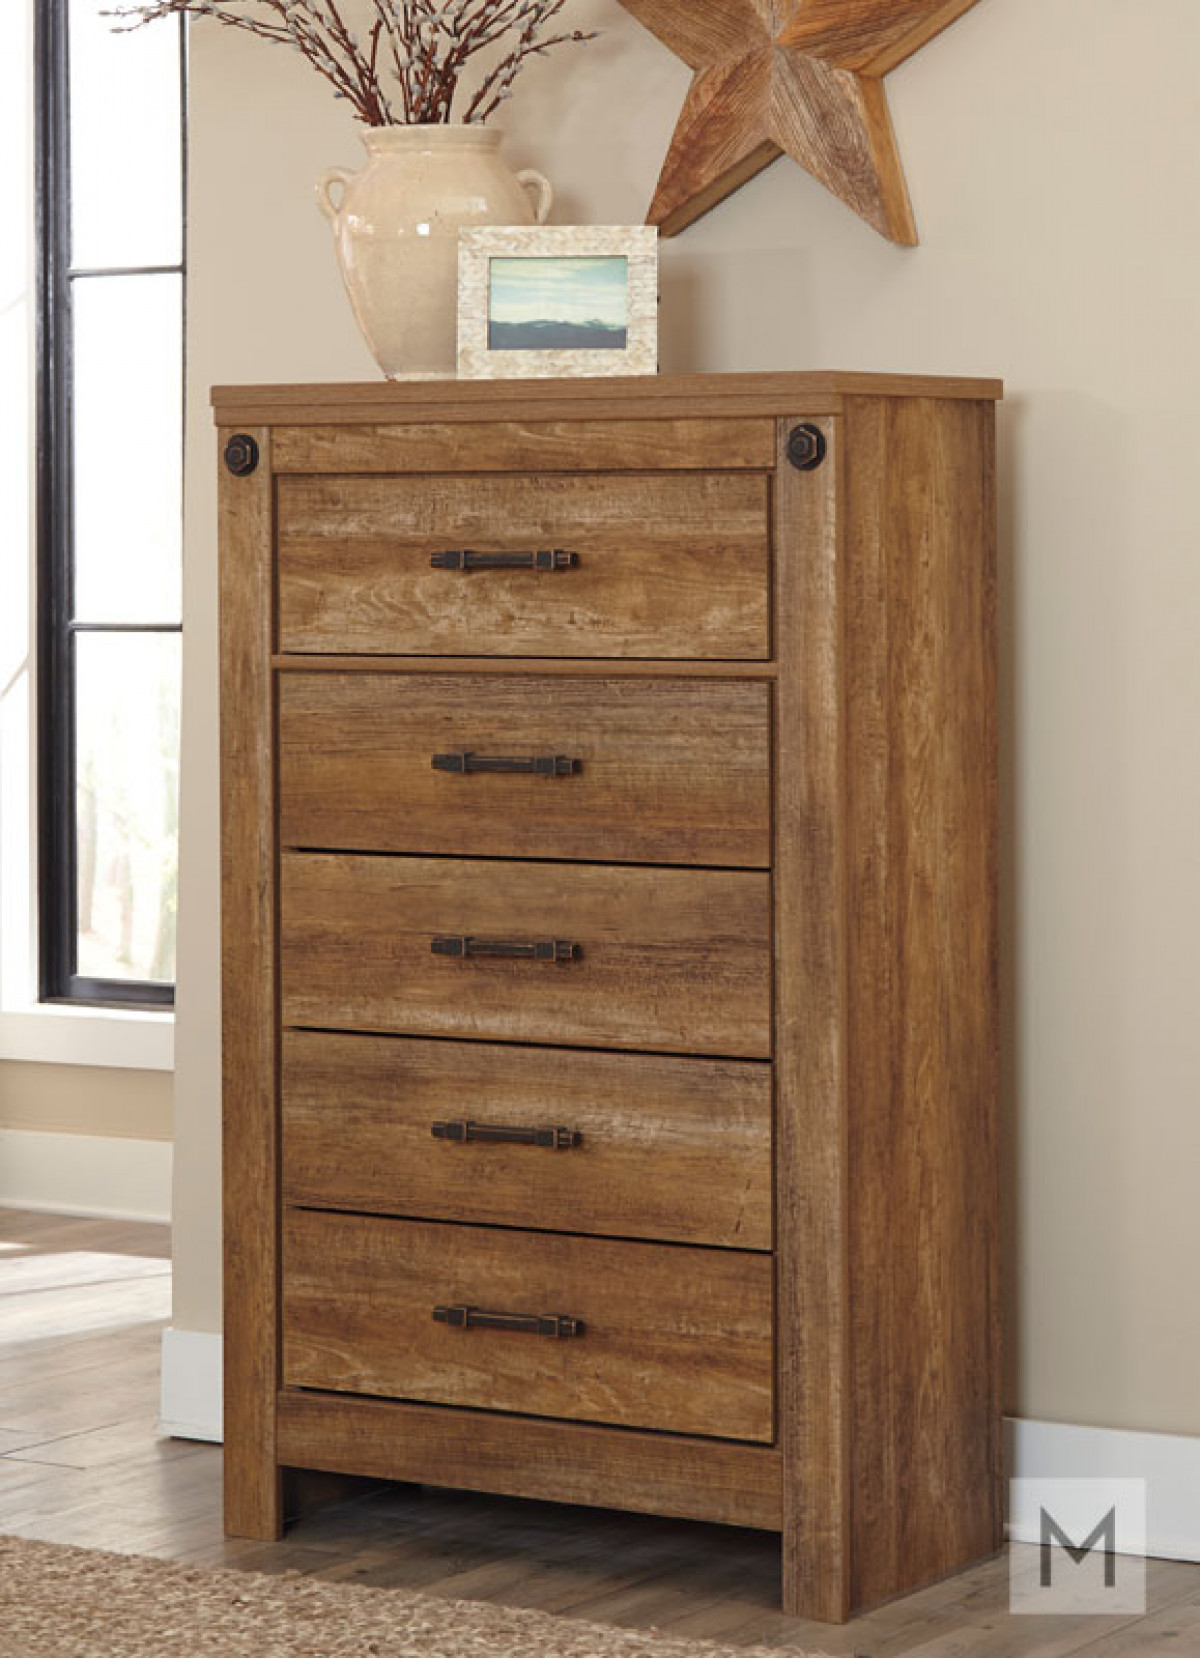 Ladimier Five Drawer Chest in Golden Brown with a Rustic Finish